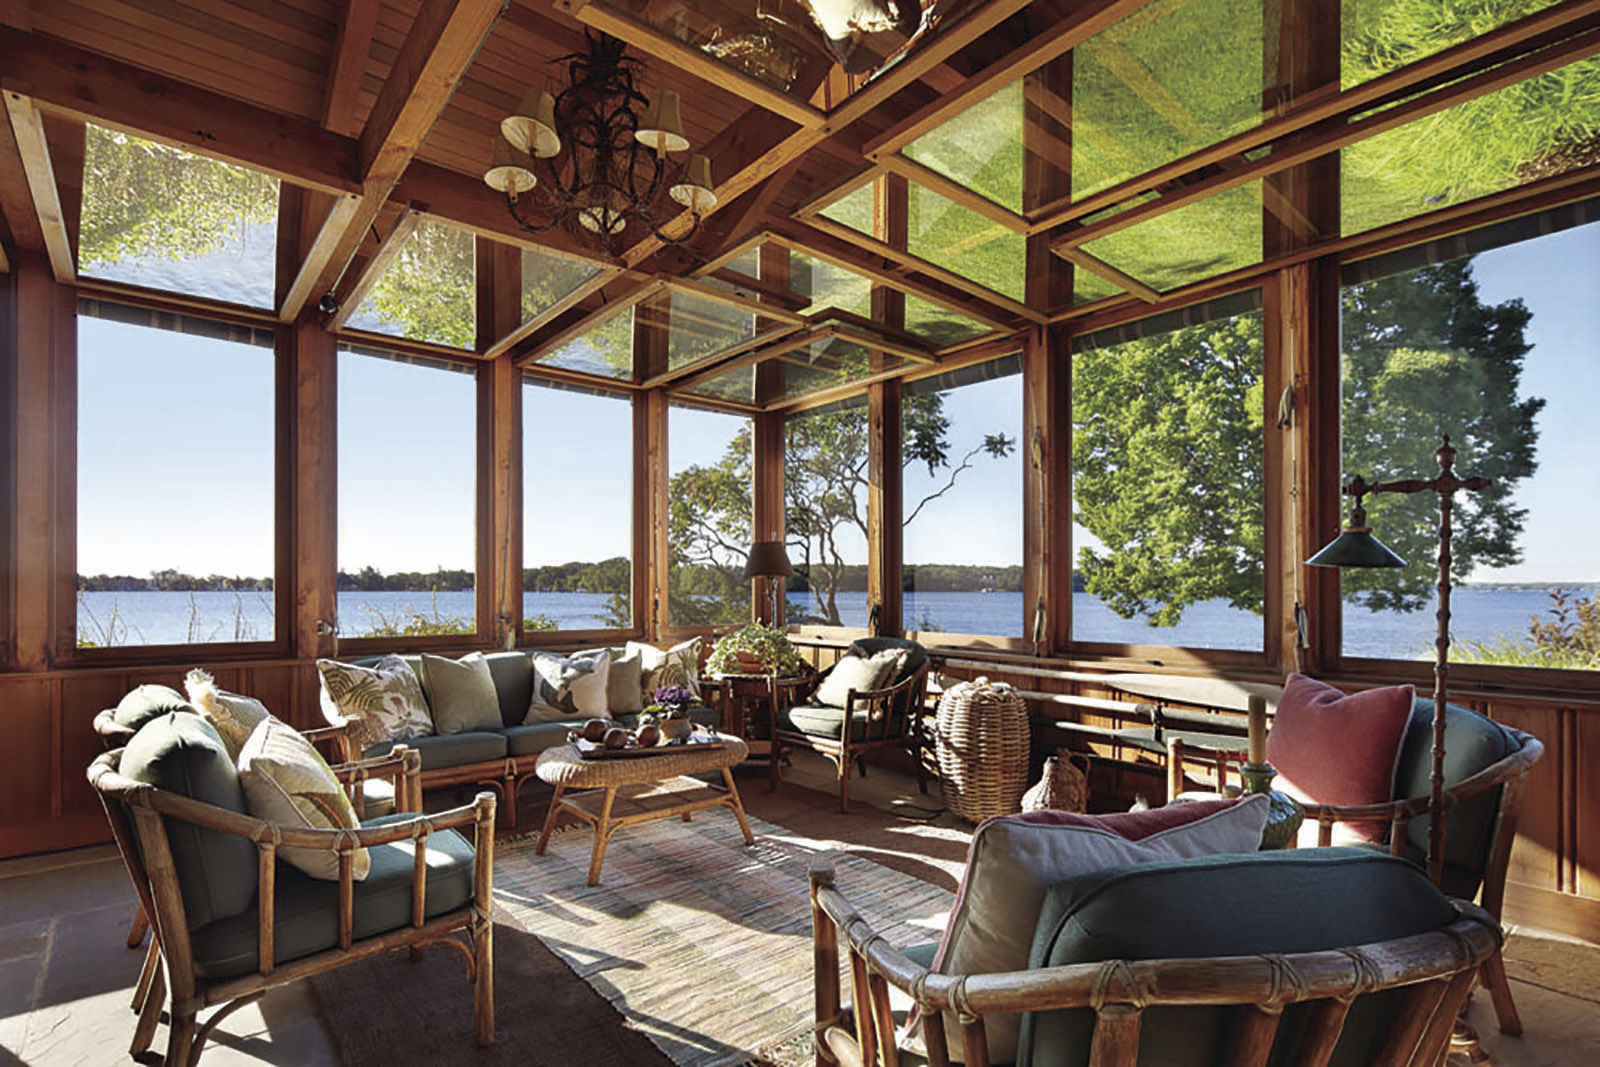 boathouses of lake minnetonka book launches may 20 and may 22 rh hometownsource com